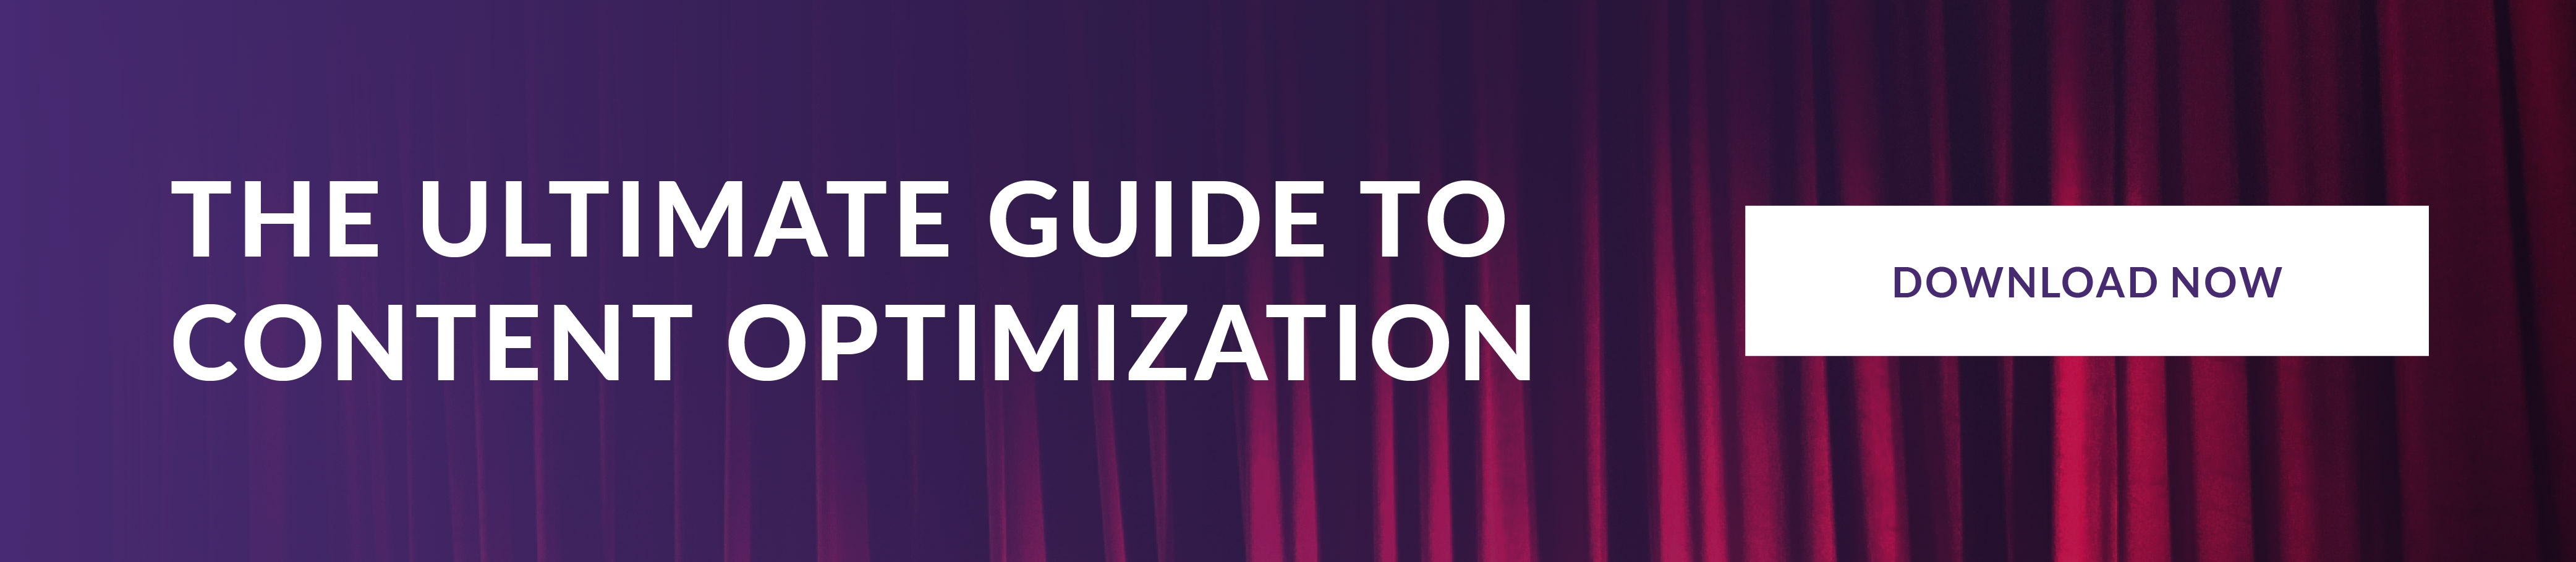 Download The Ultimate Guide to Content Optimization Now